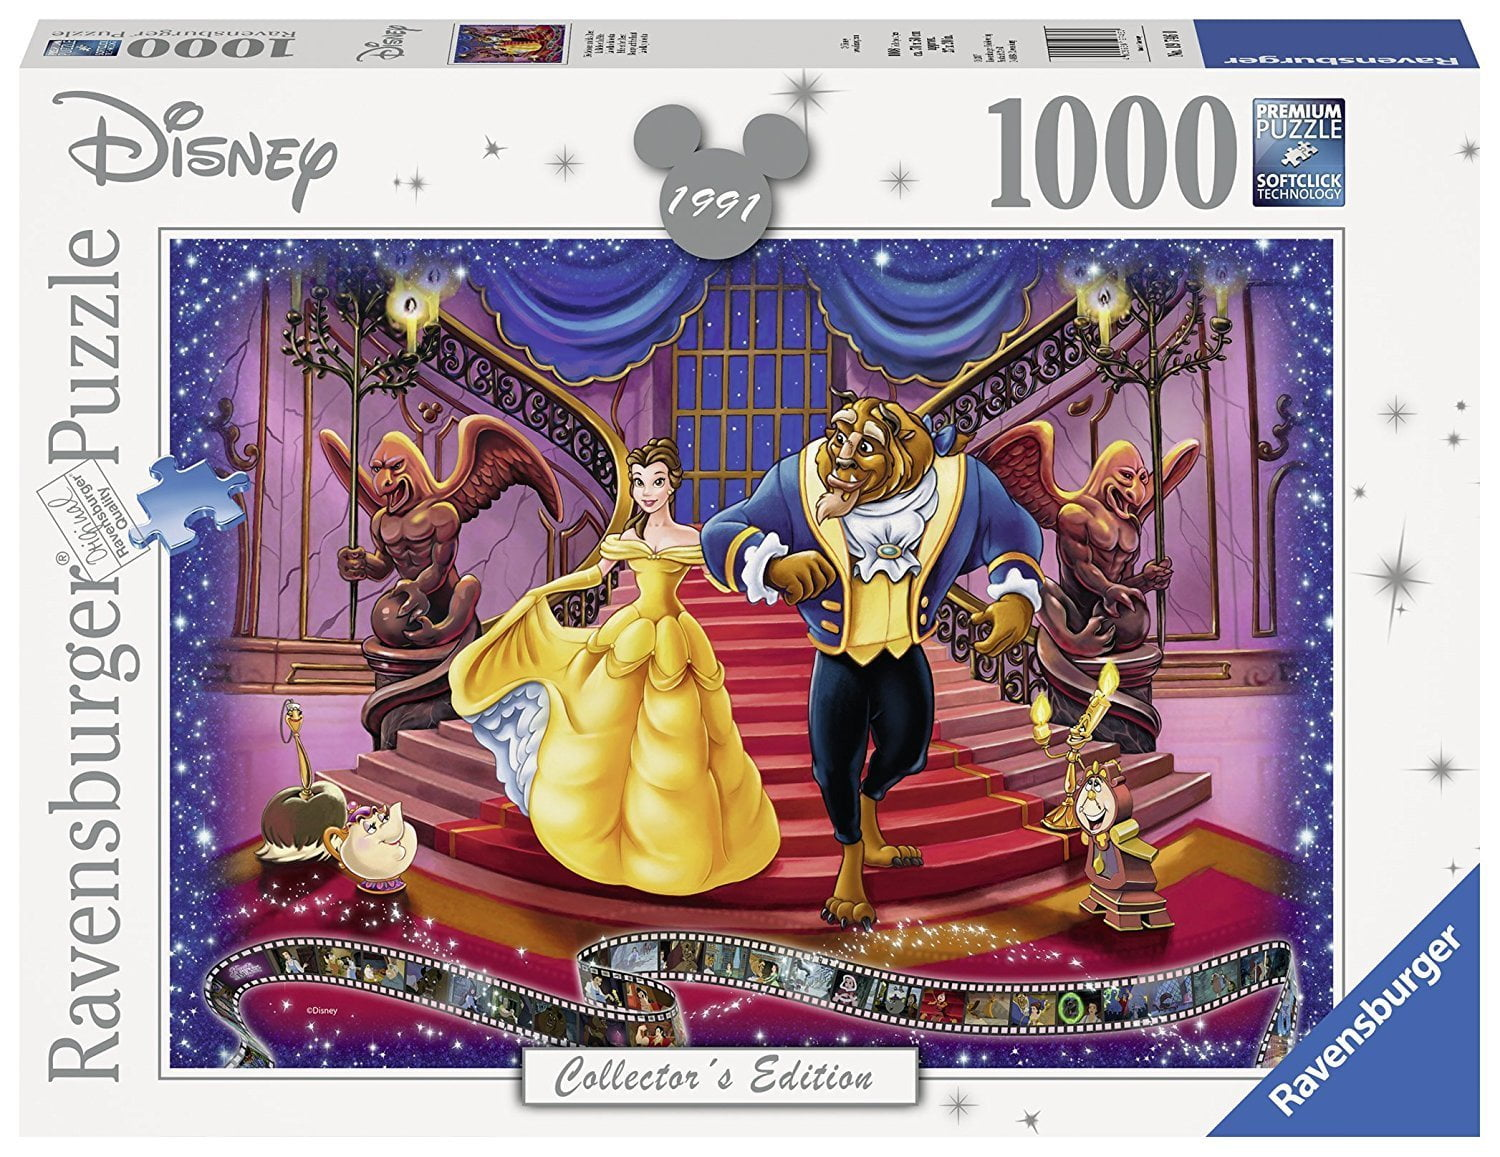 Disney Memories Beauty And The Beast 1000 Piece